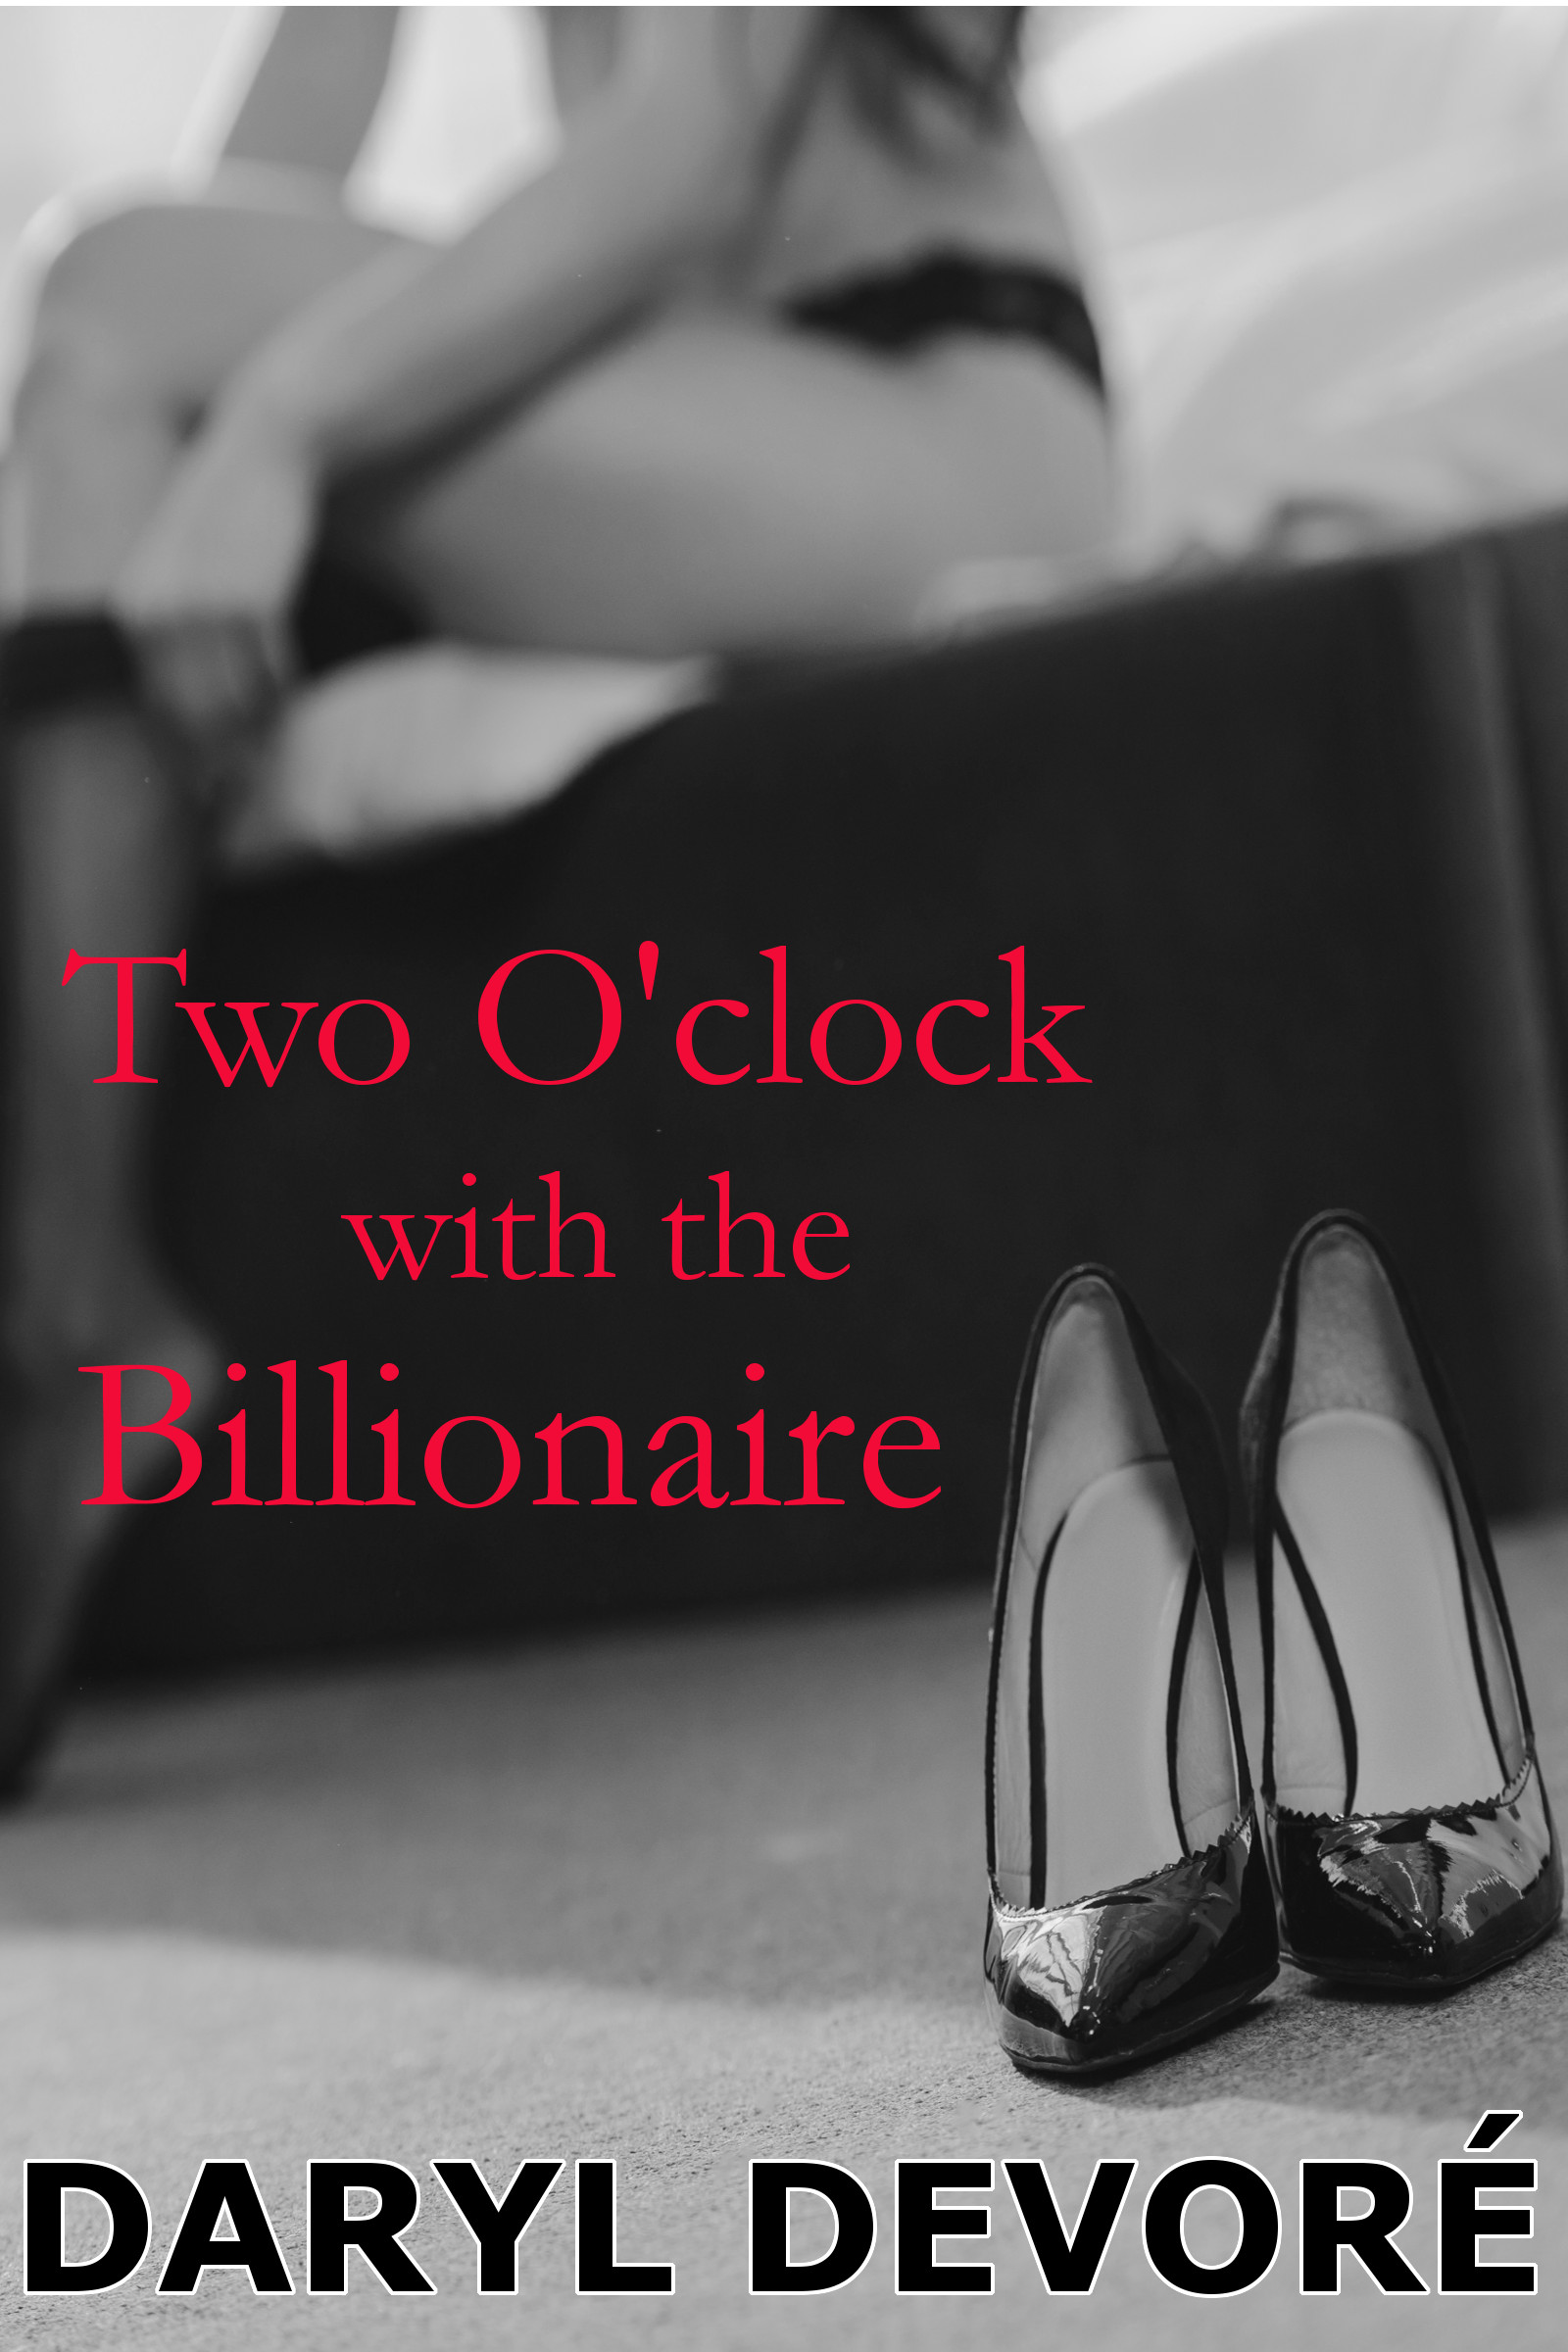 Two O'clock with the Billionaire-DD Cover 2rev